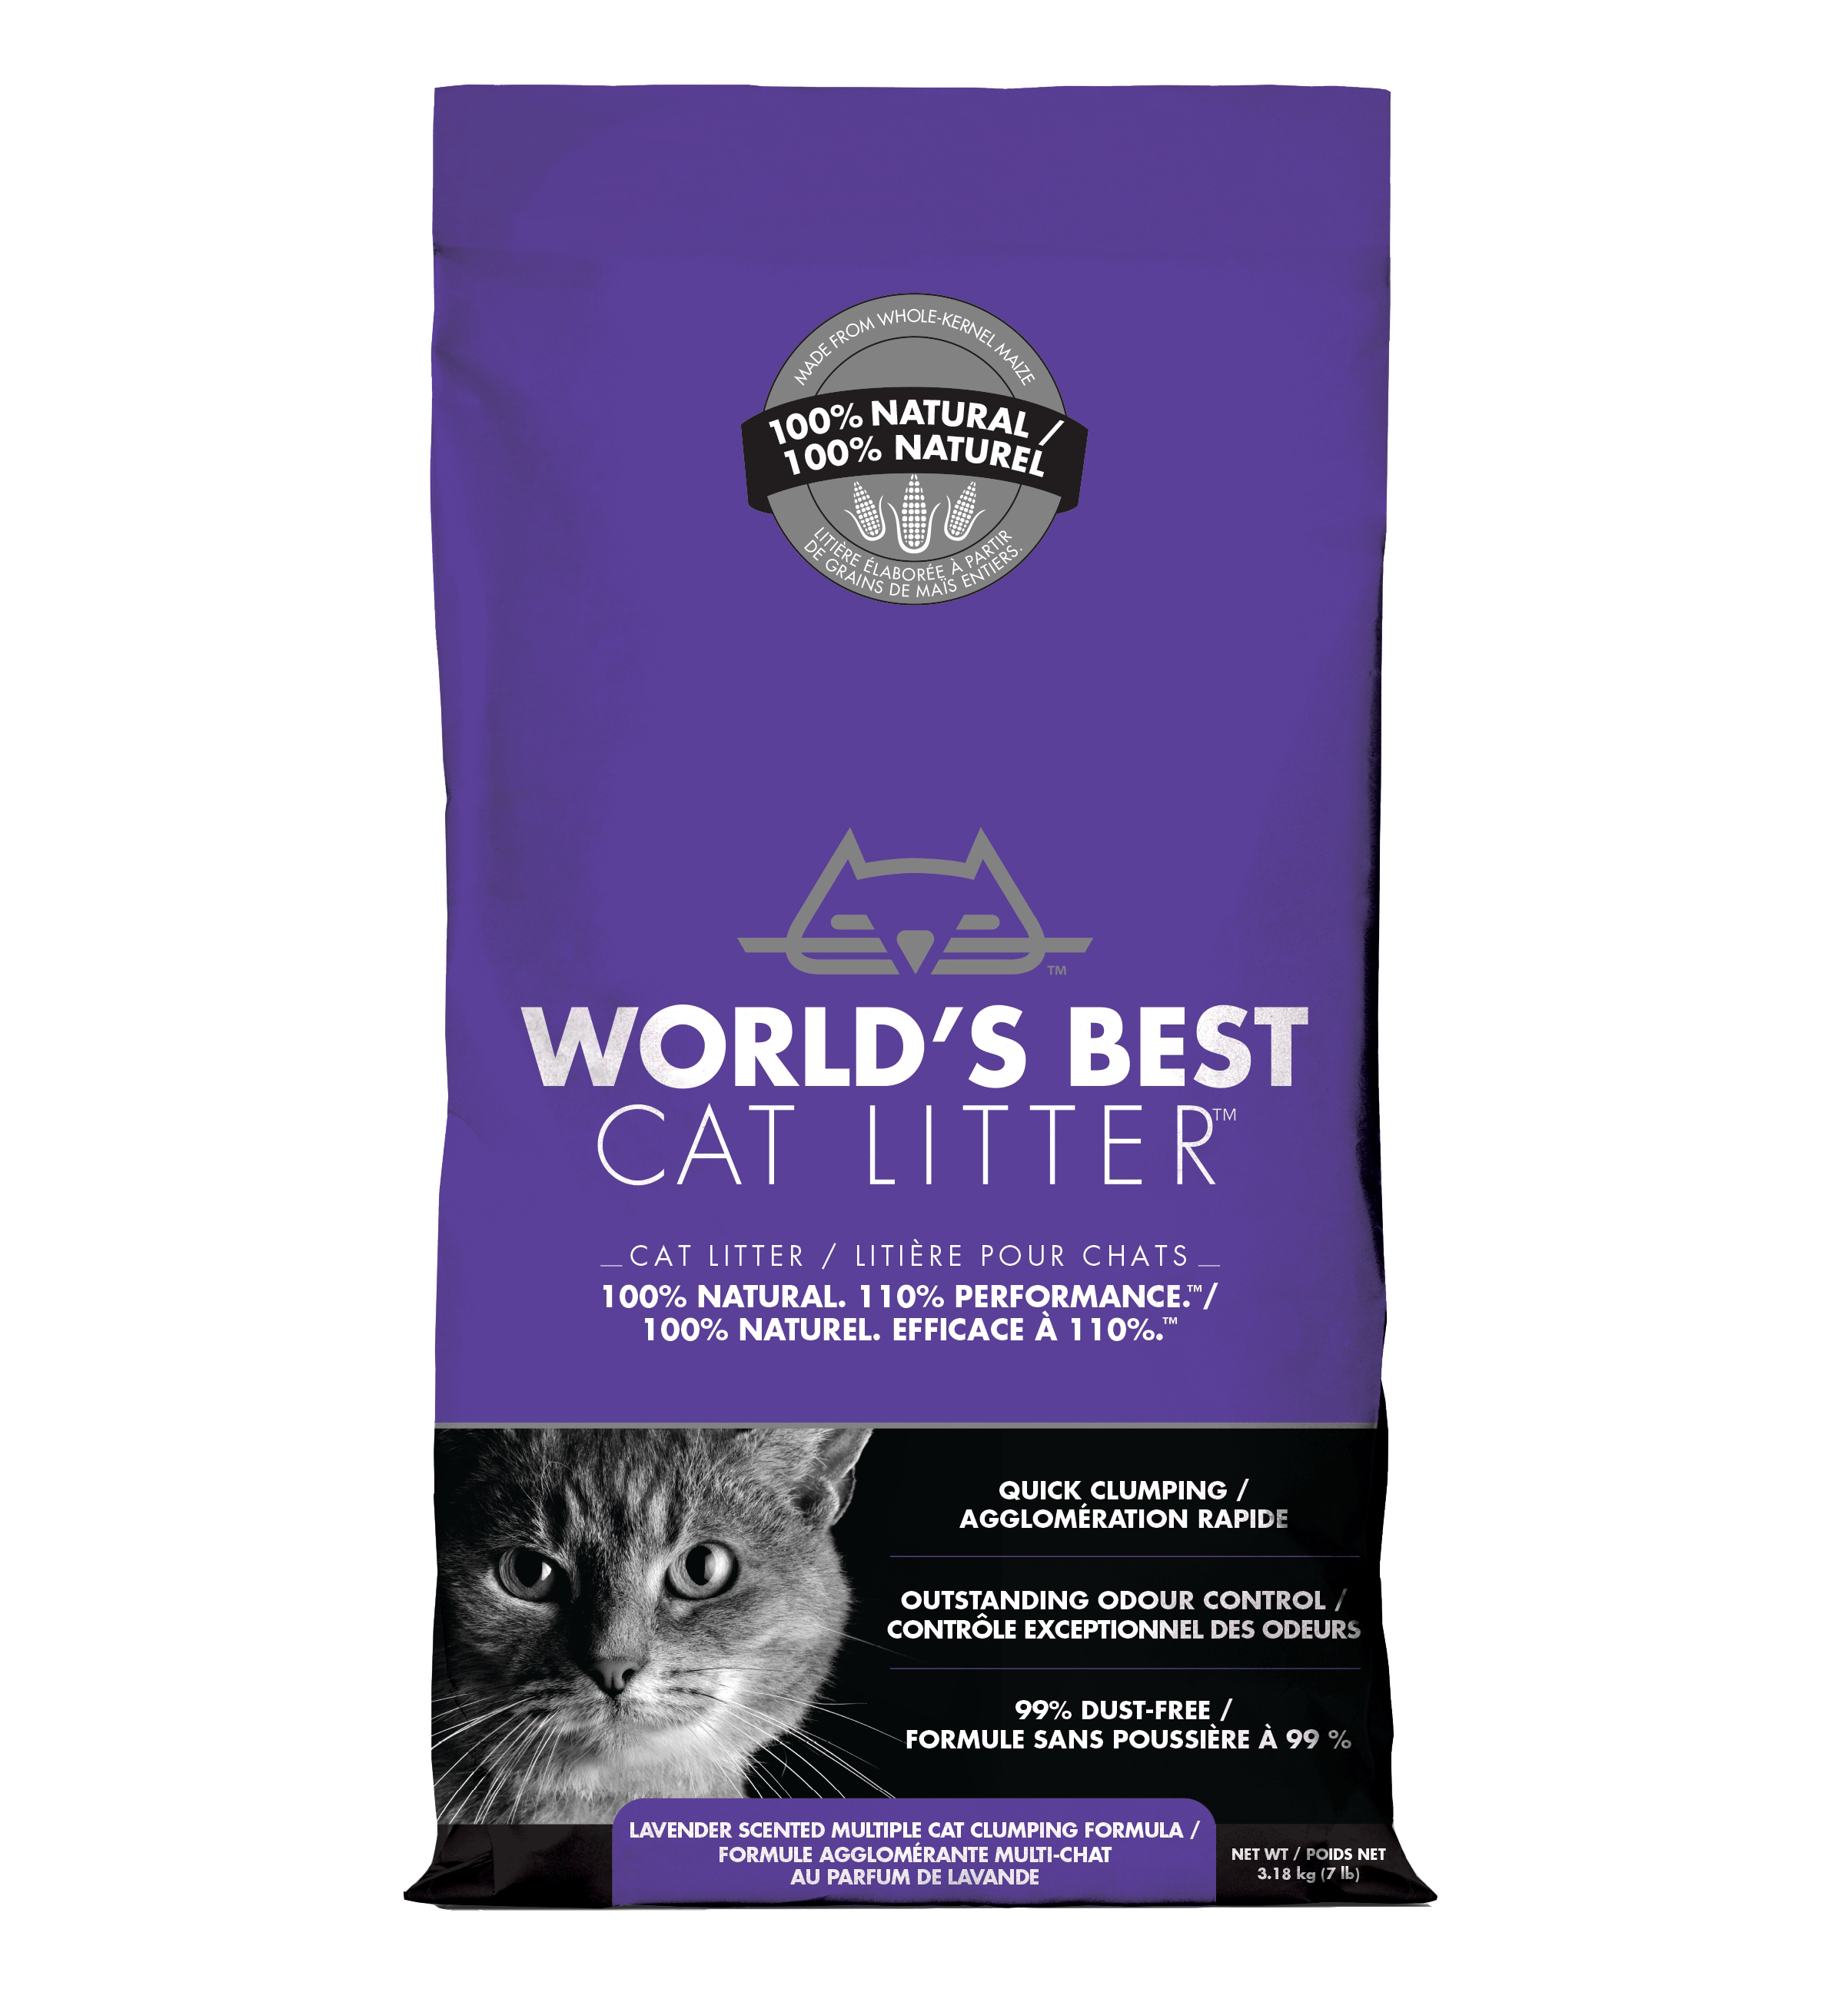 World's Best Cat Litter - Scented Multi Cat Formula | 3.18kg - Click to enlarge picture.